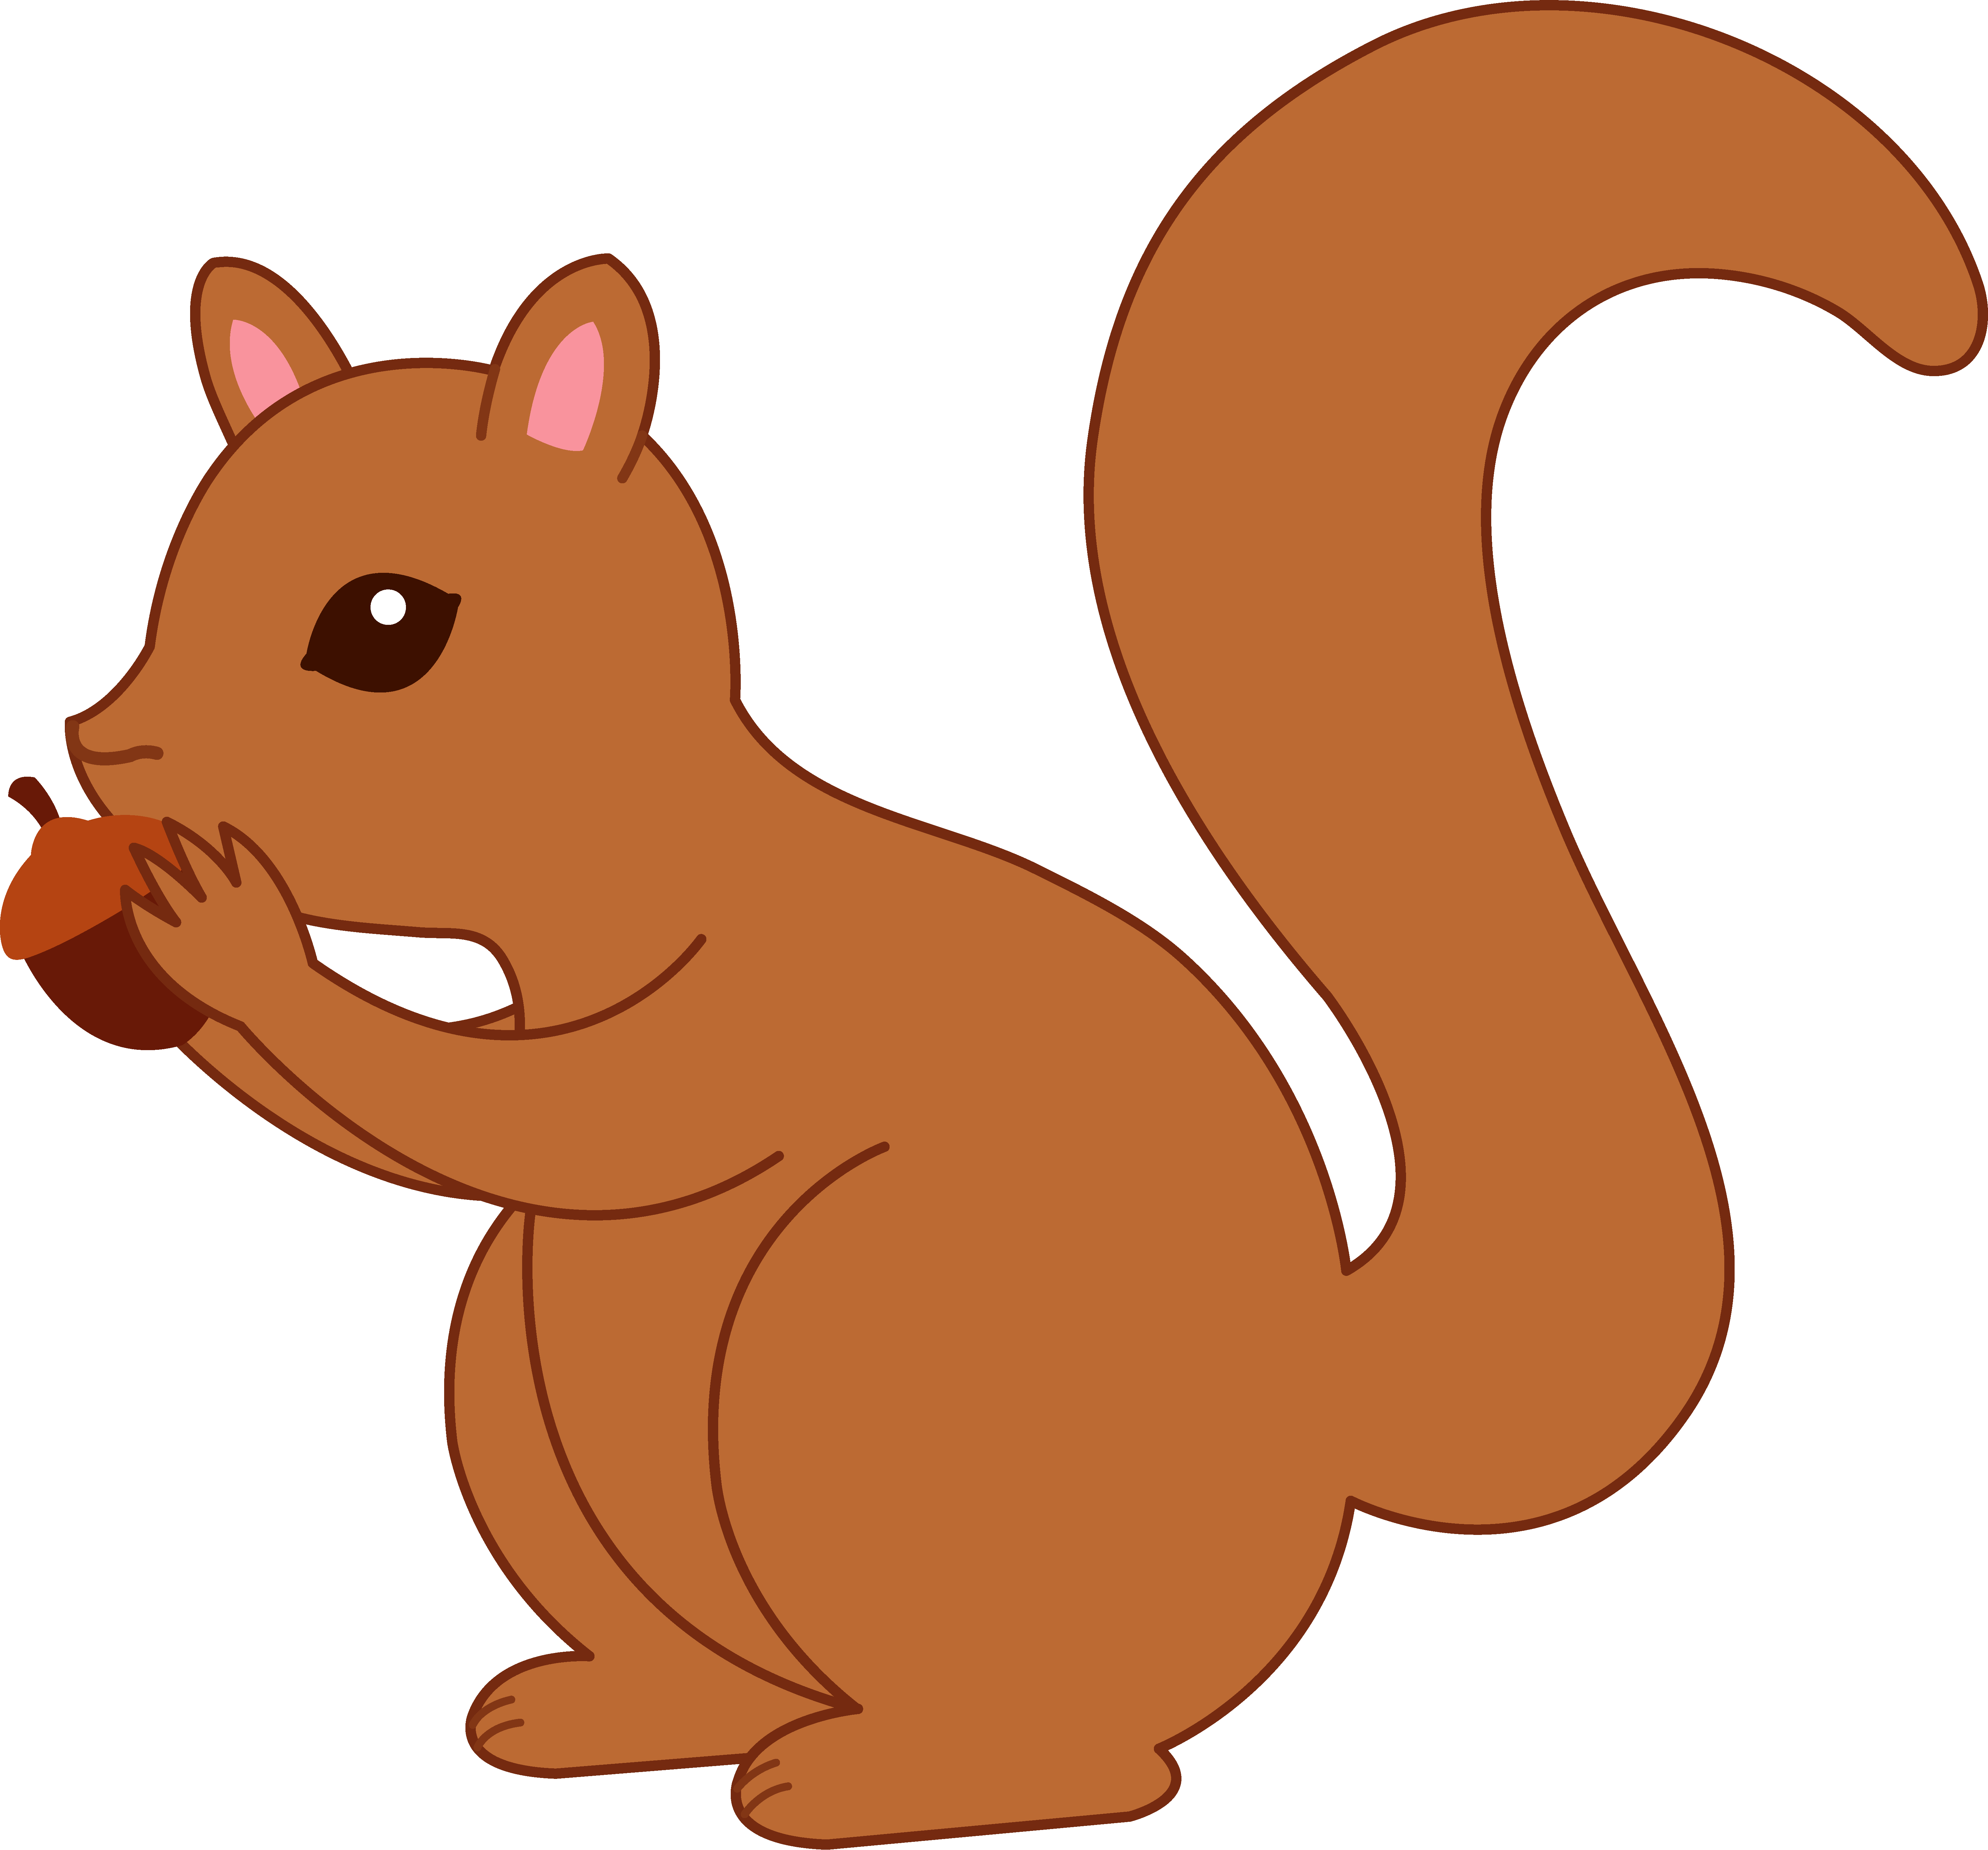 Squirrel clipart squirrel drawing. Cartoon best panda free